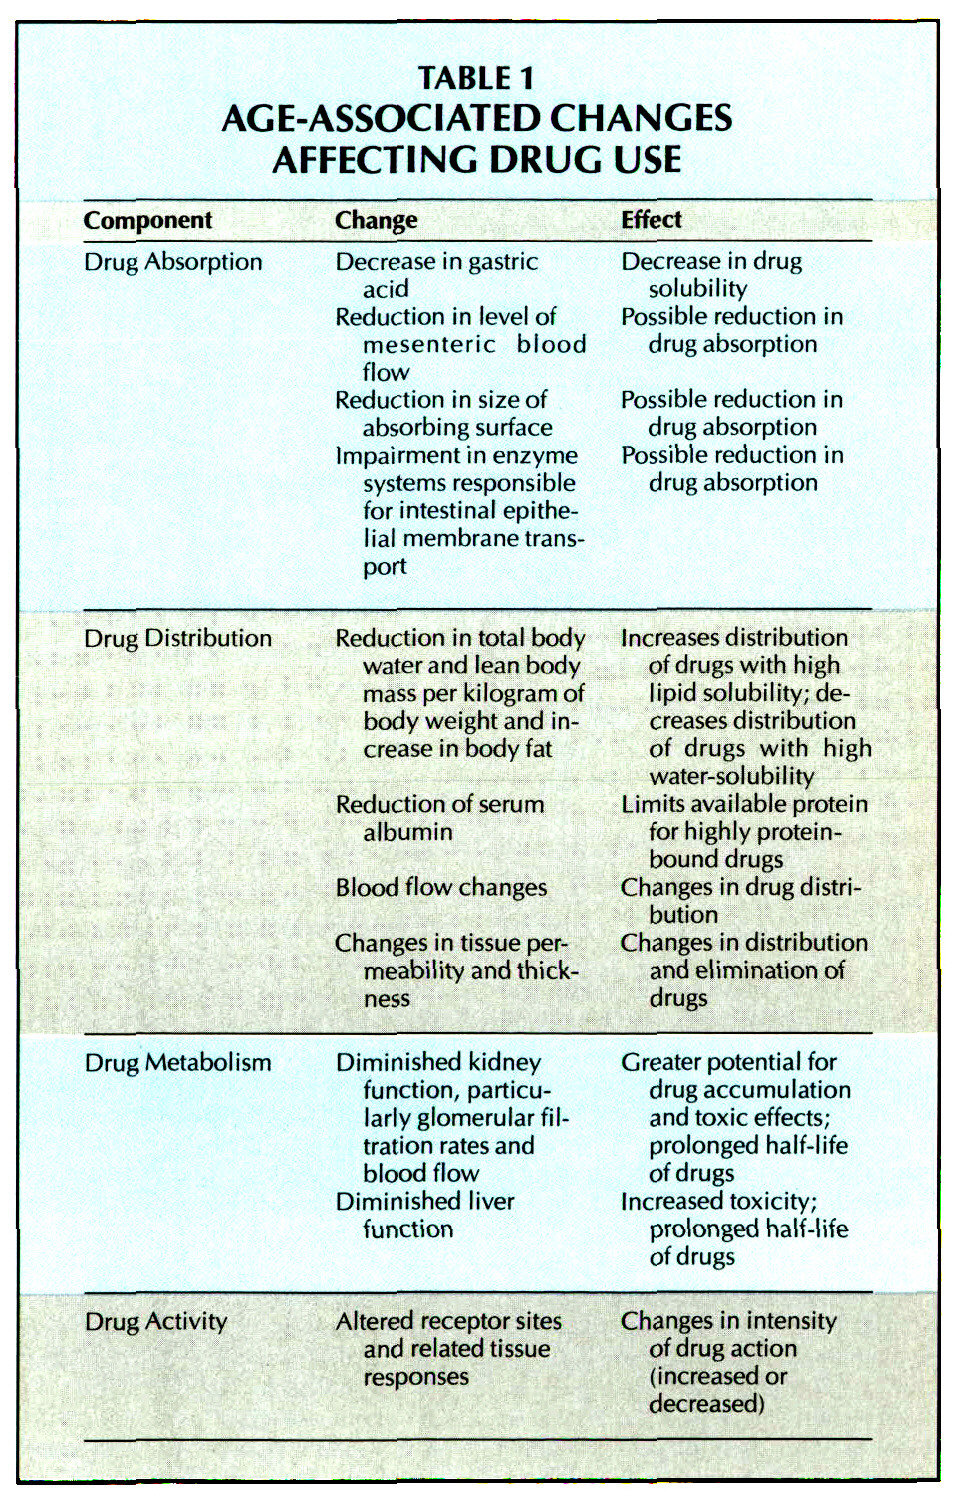 TABLE 1AGE-ASSOCIATED CHANGES AFFECTING DRUG USE